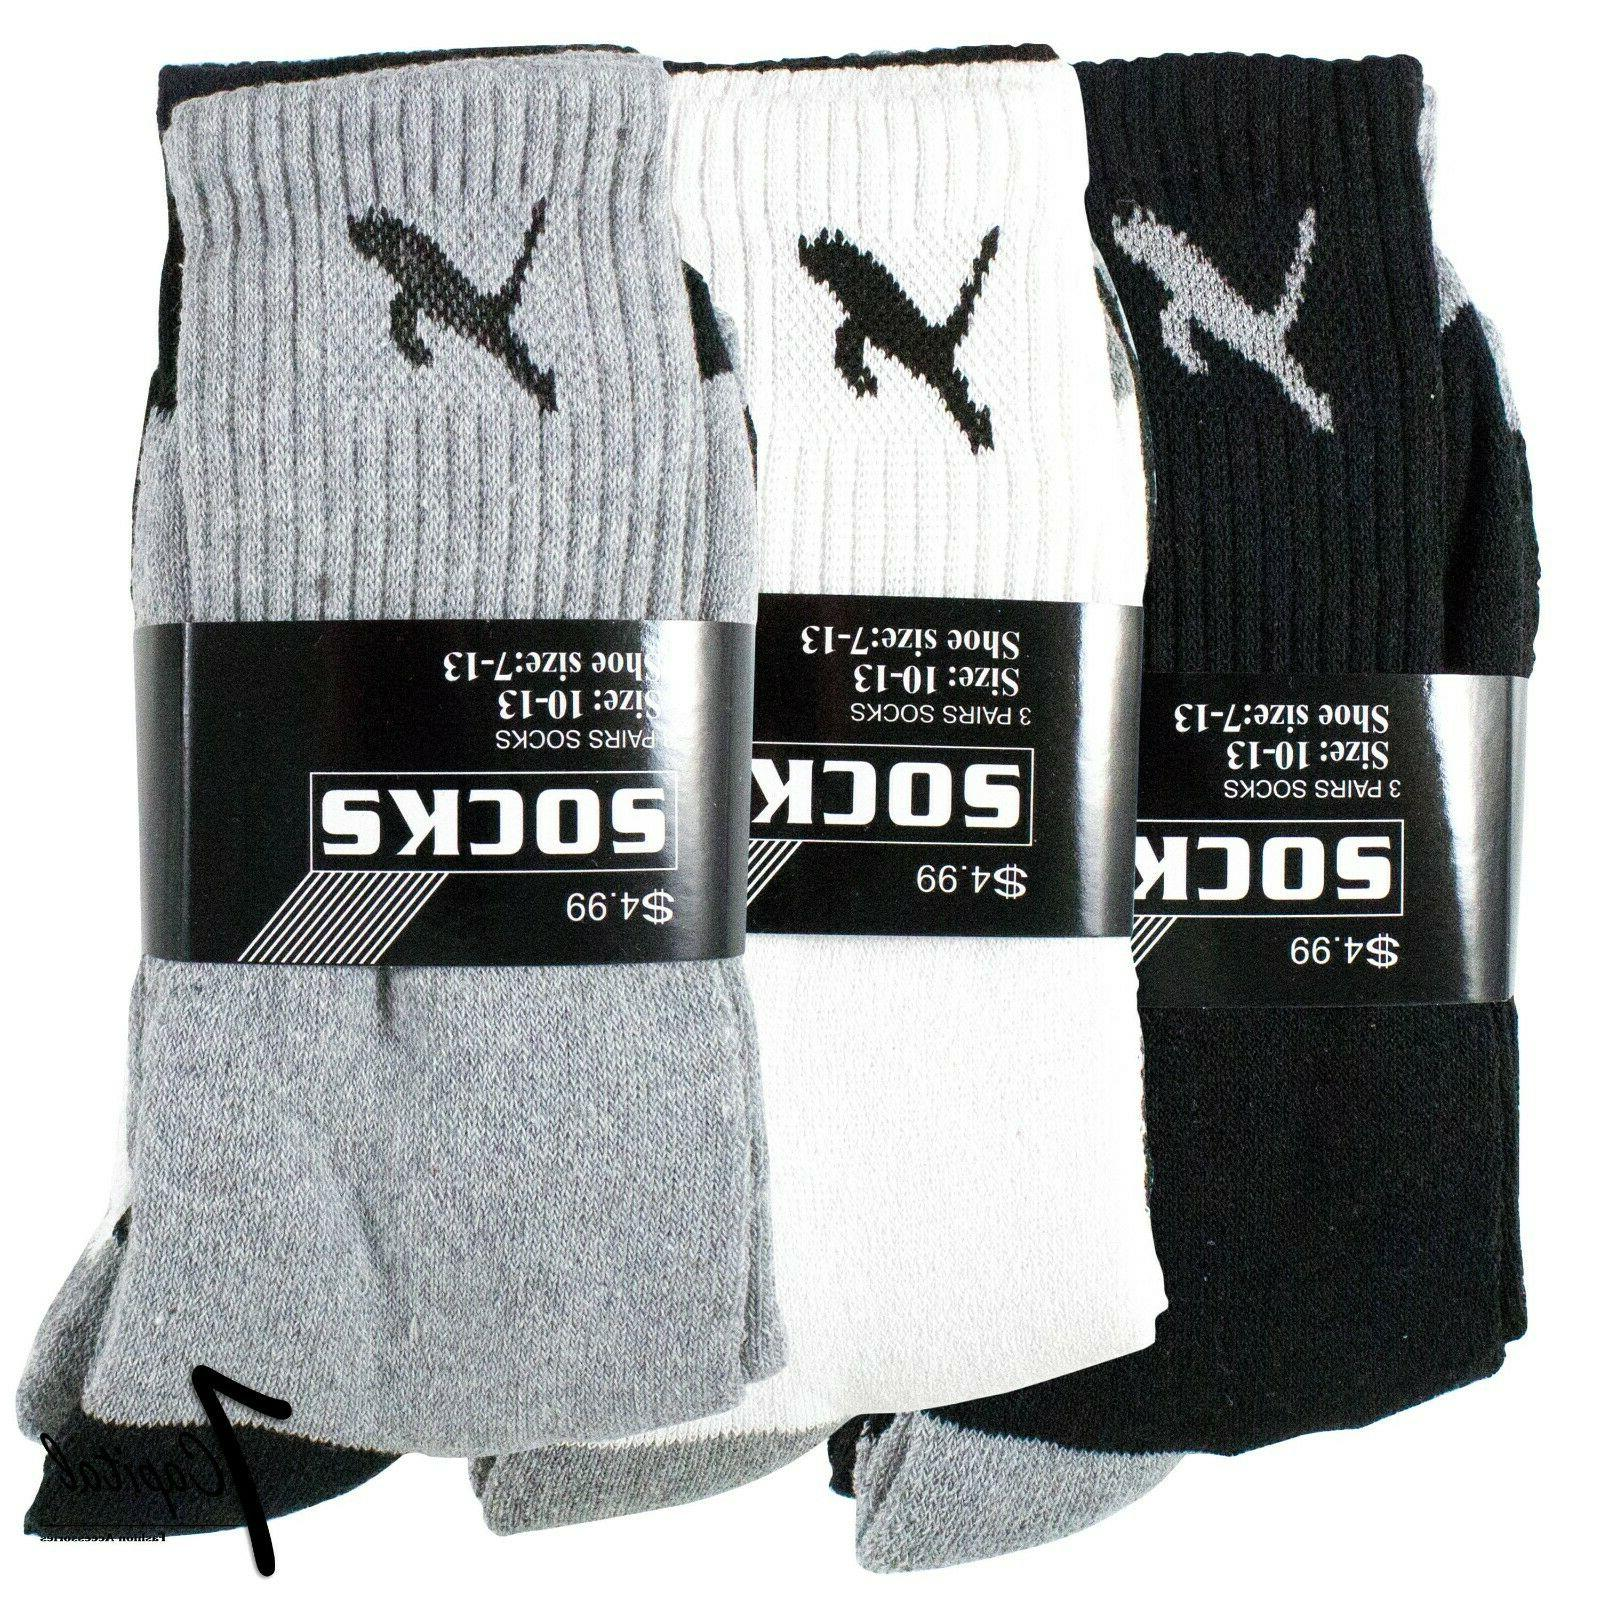 Lot 3-12 Pairs Solid Athletic Plain Socks Size 9-11